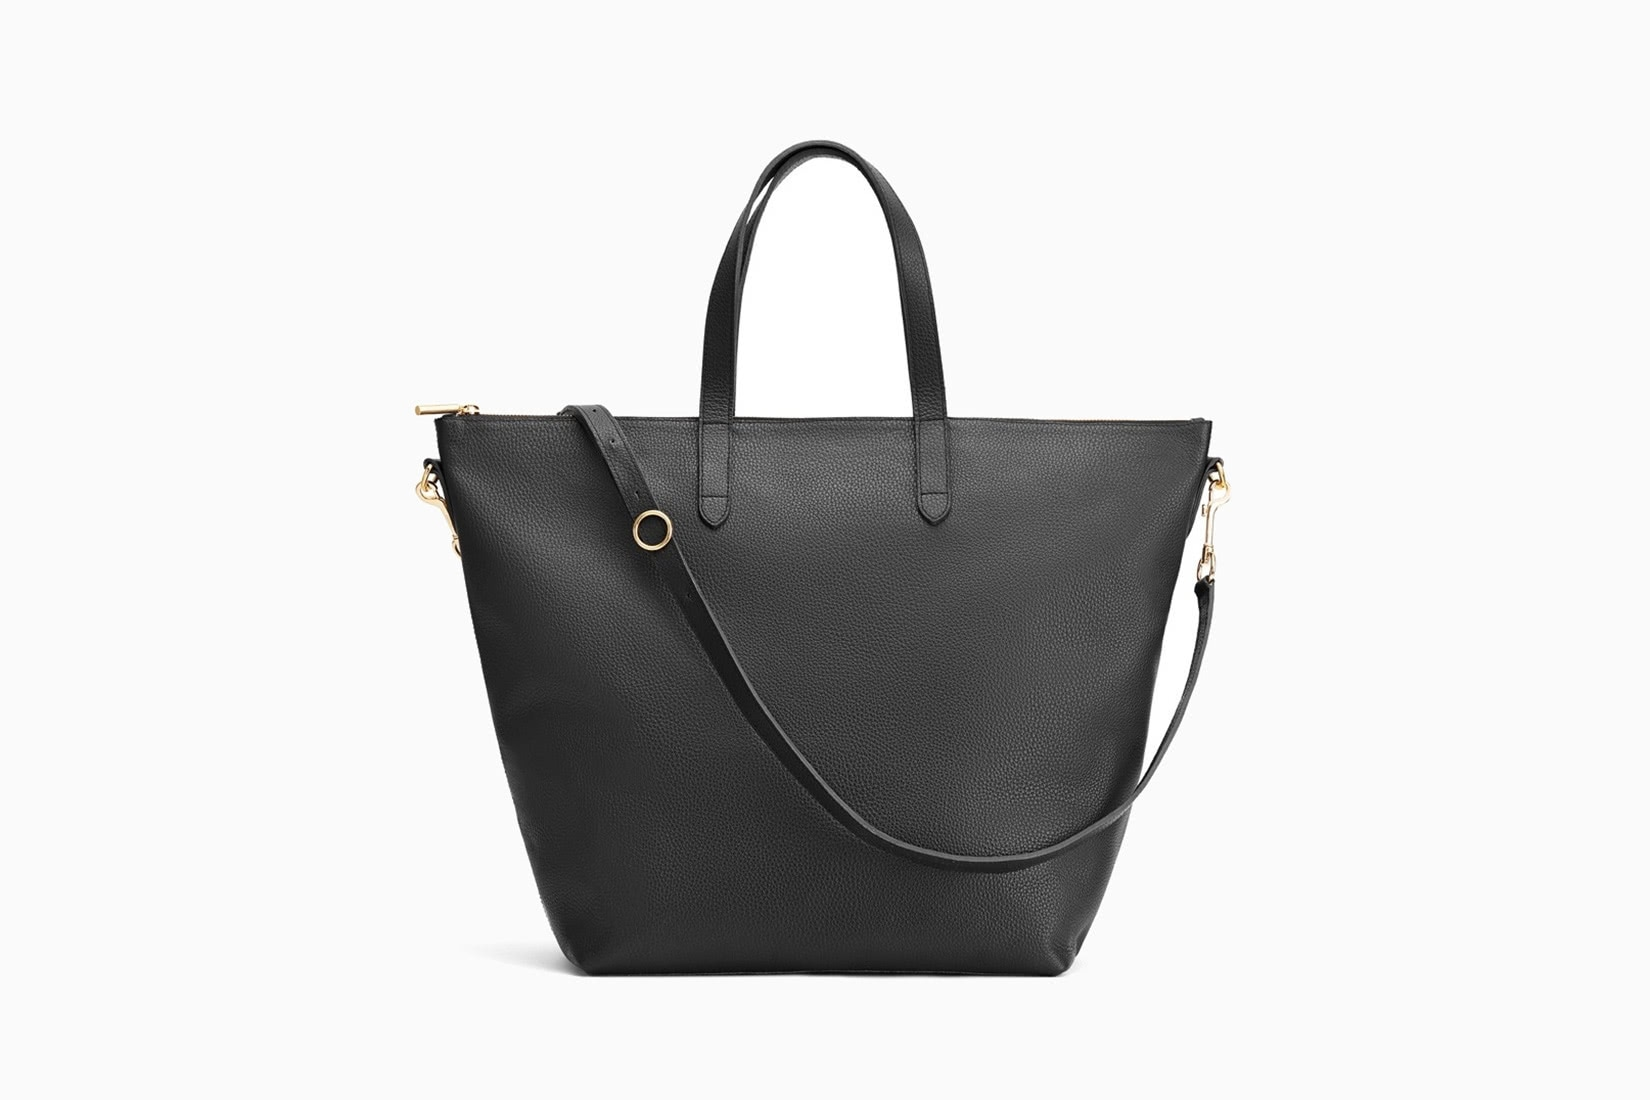 best travel tote bags women large cuyana - Luxe Digital